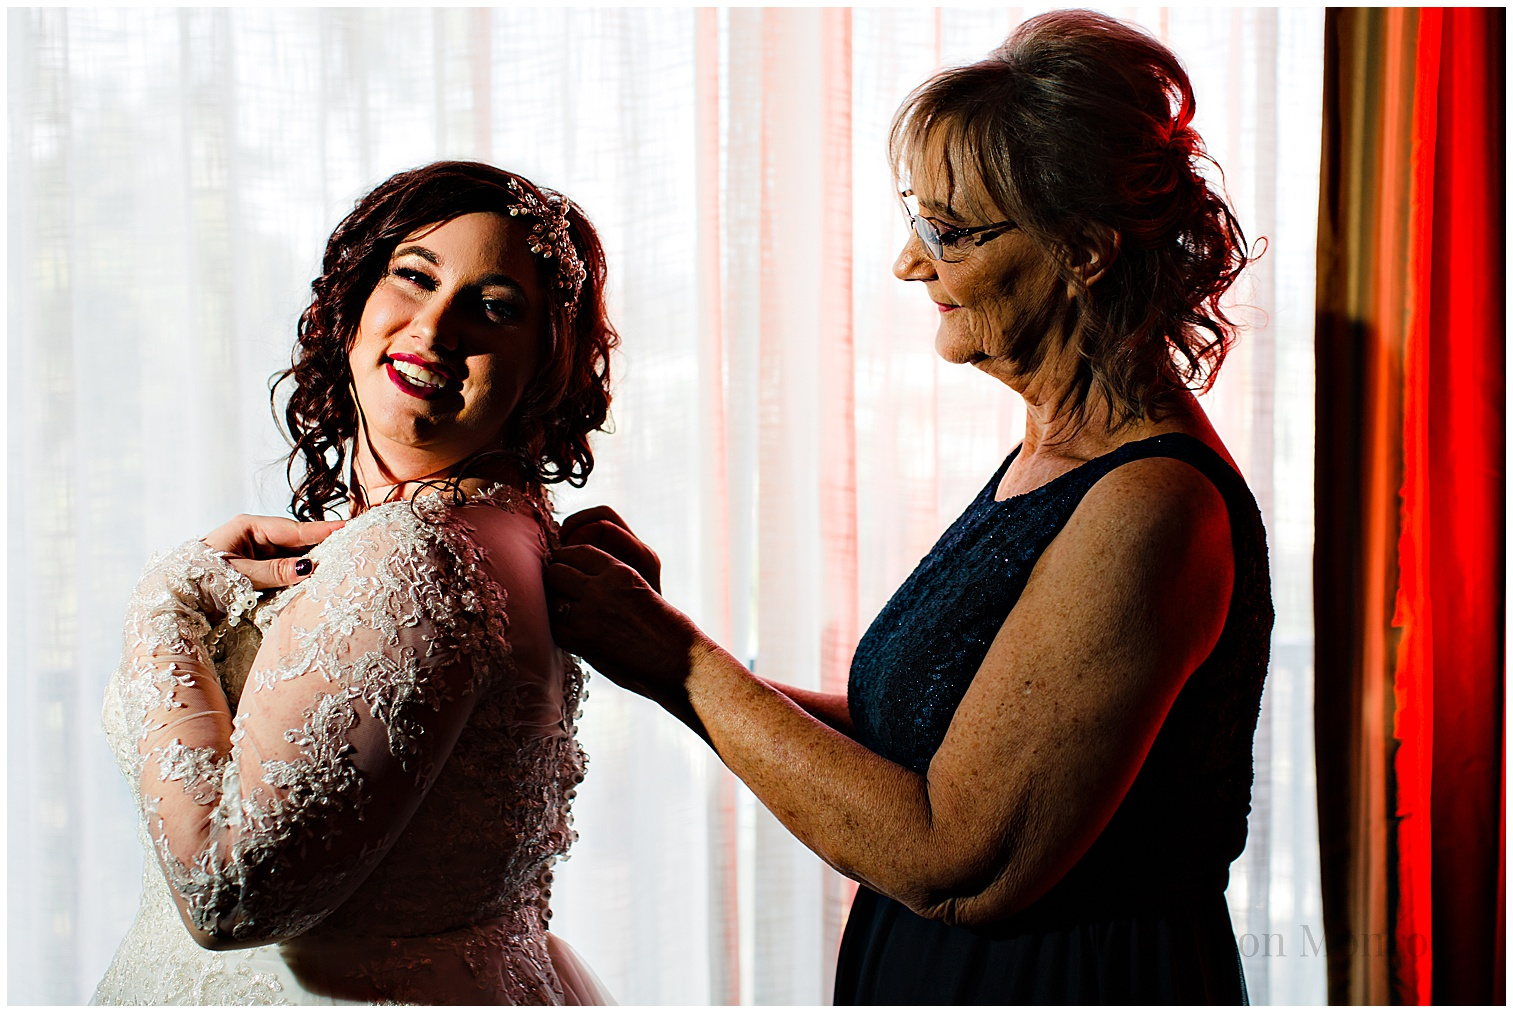 los_angeles_wedding_photographer_1107.jpg